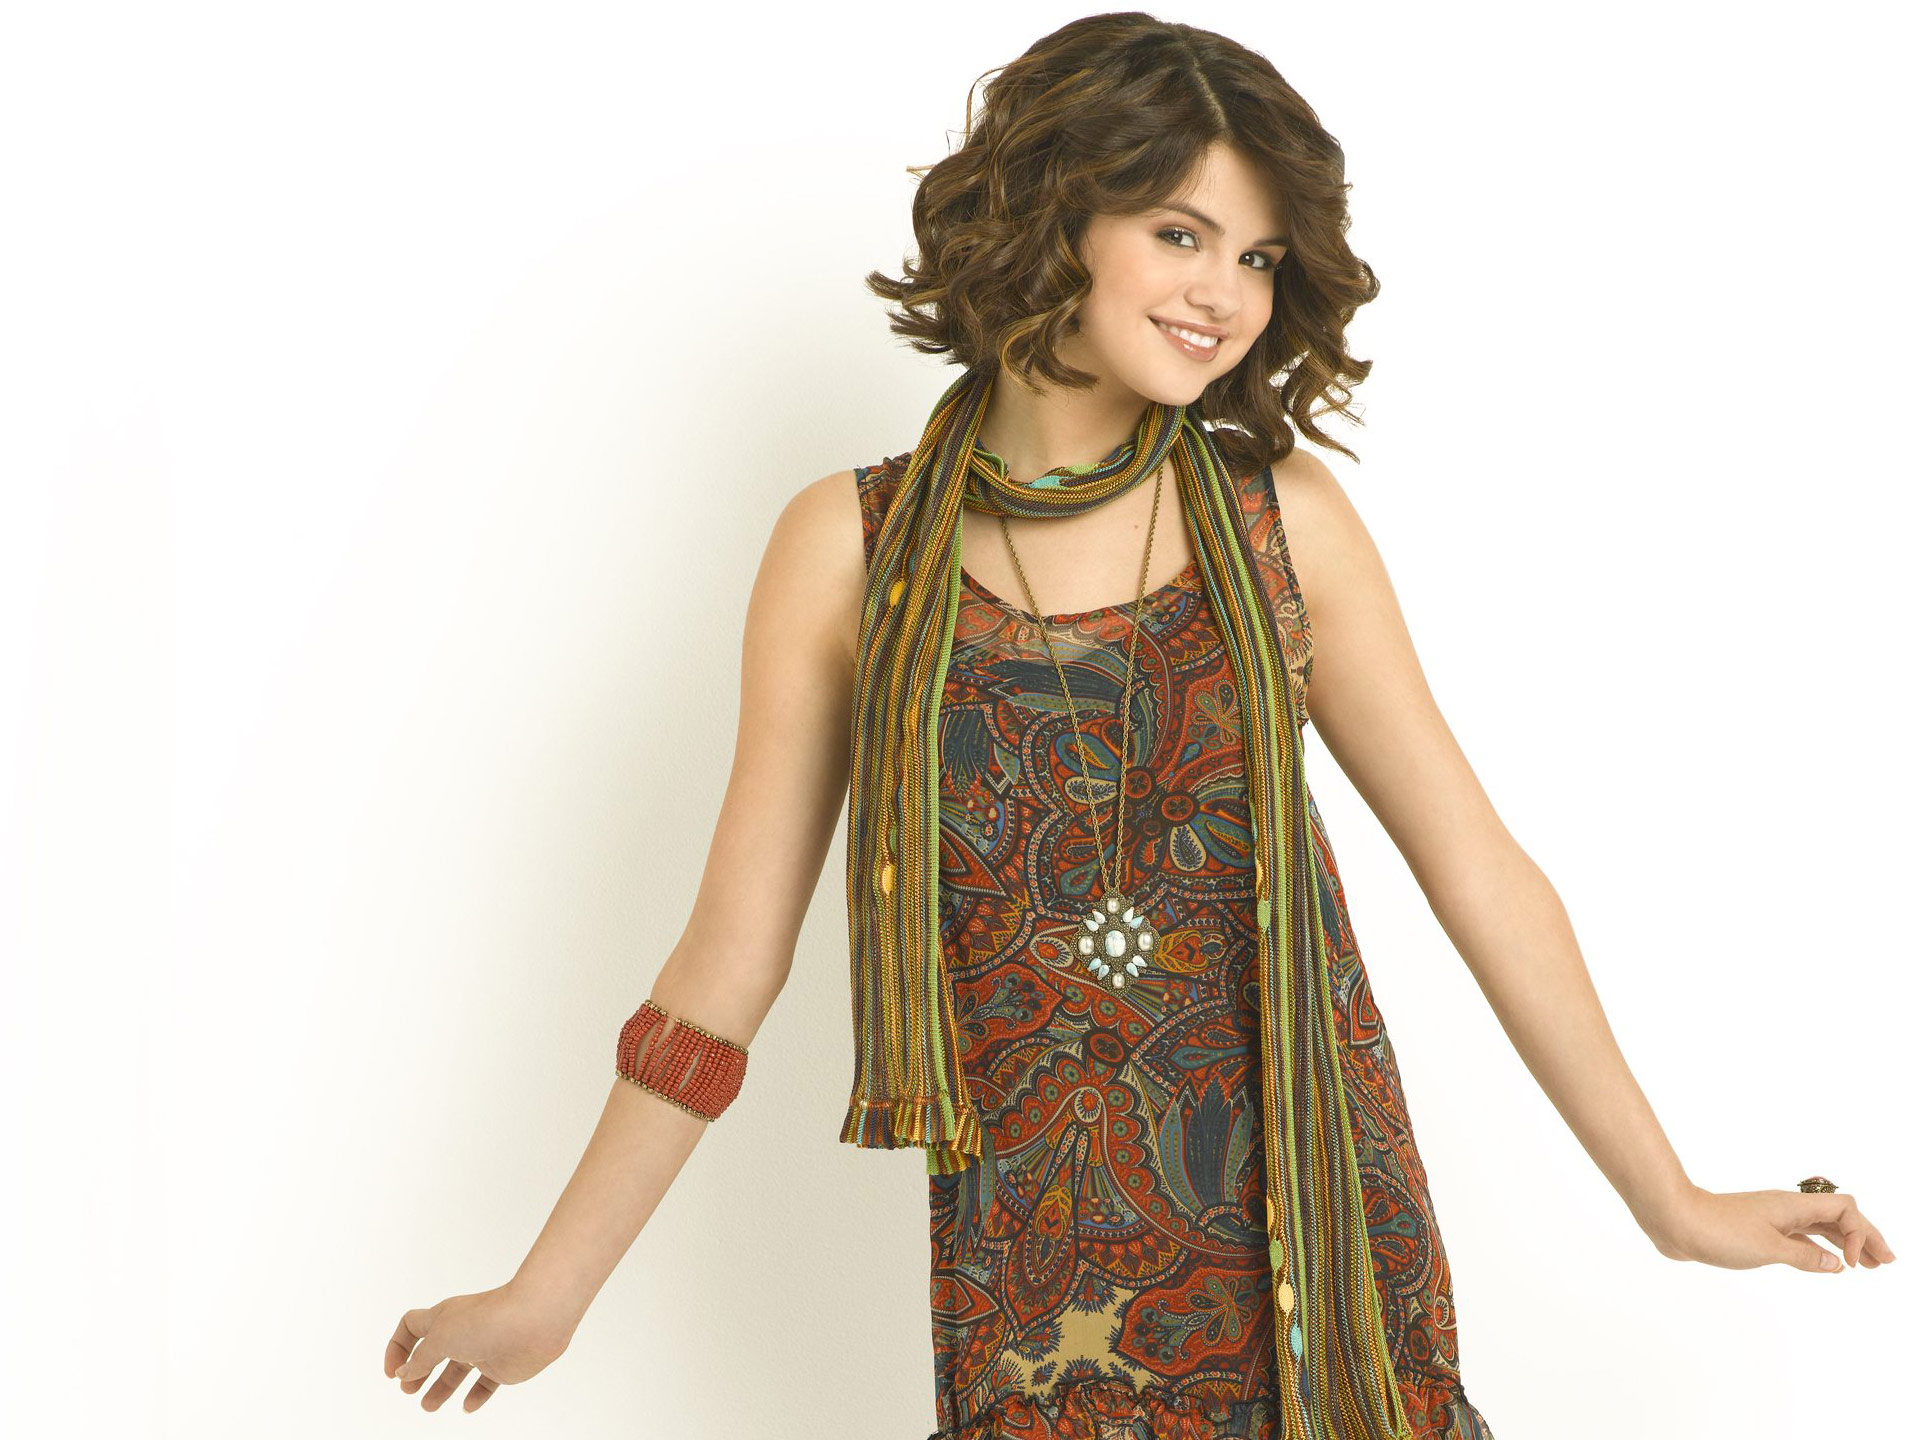 HD Wallpapers Selena Gomez 17